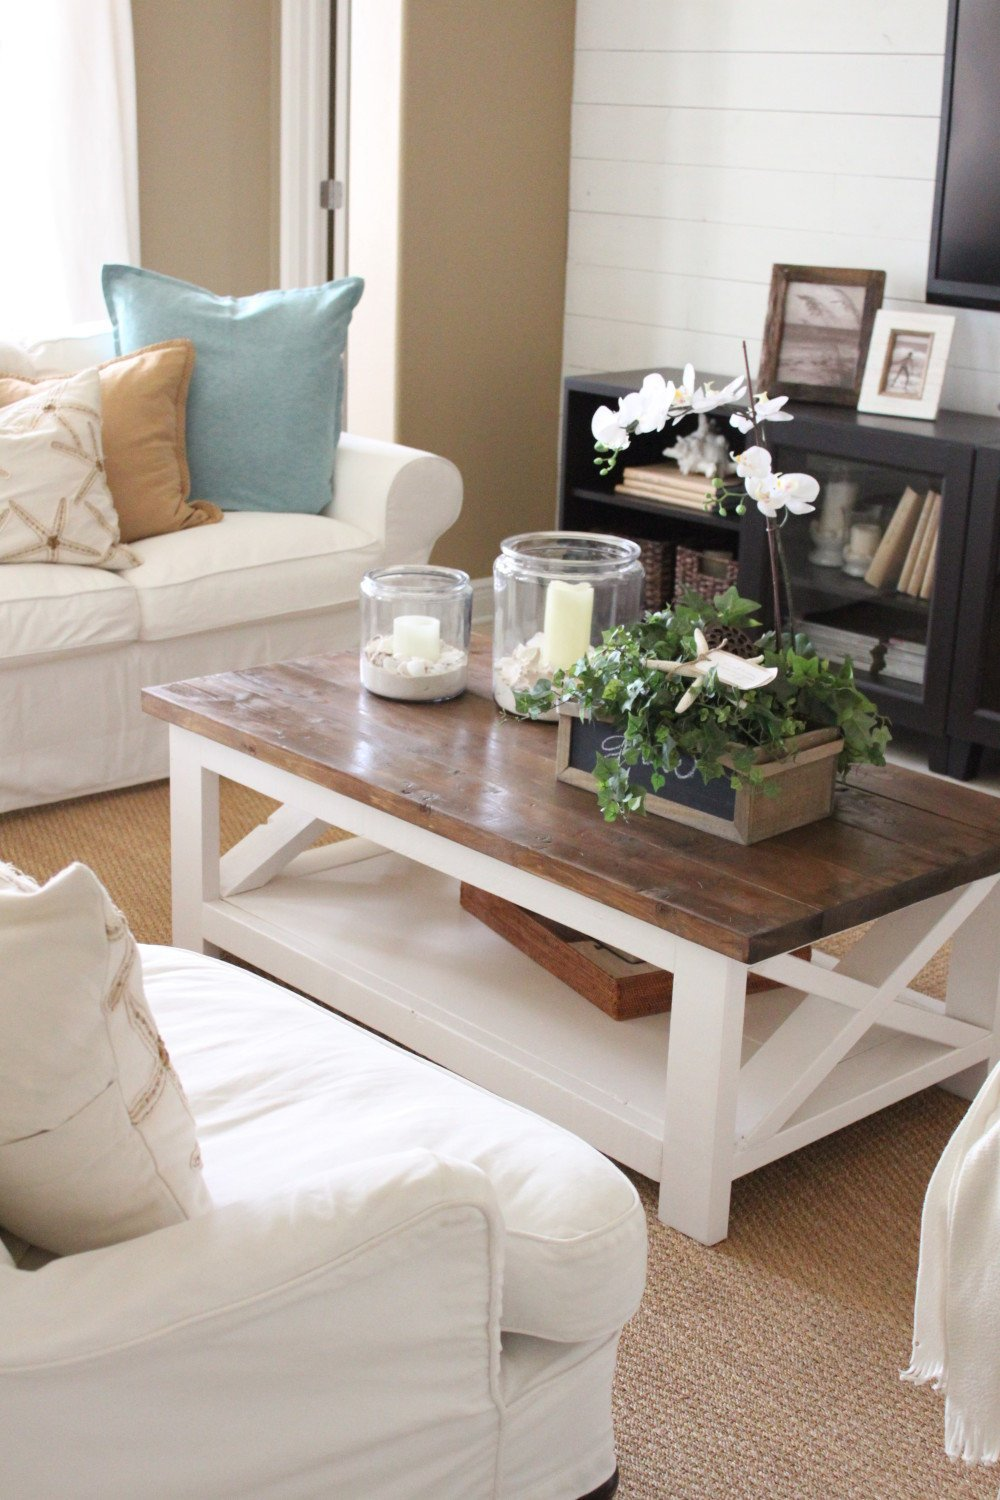 Decor Ideas for Coffee Tables Beautiful A New Rustic Coastal Coffee Table Starfish Cottage